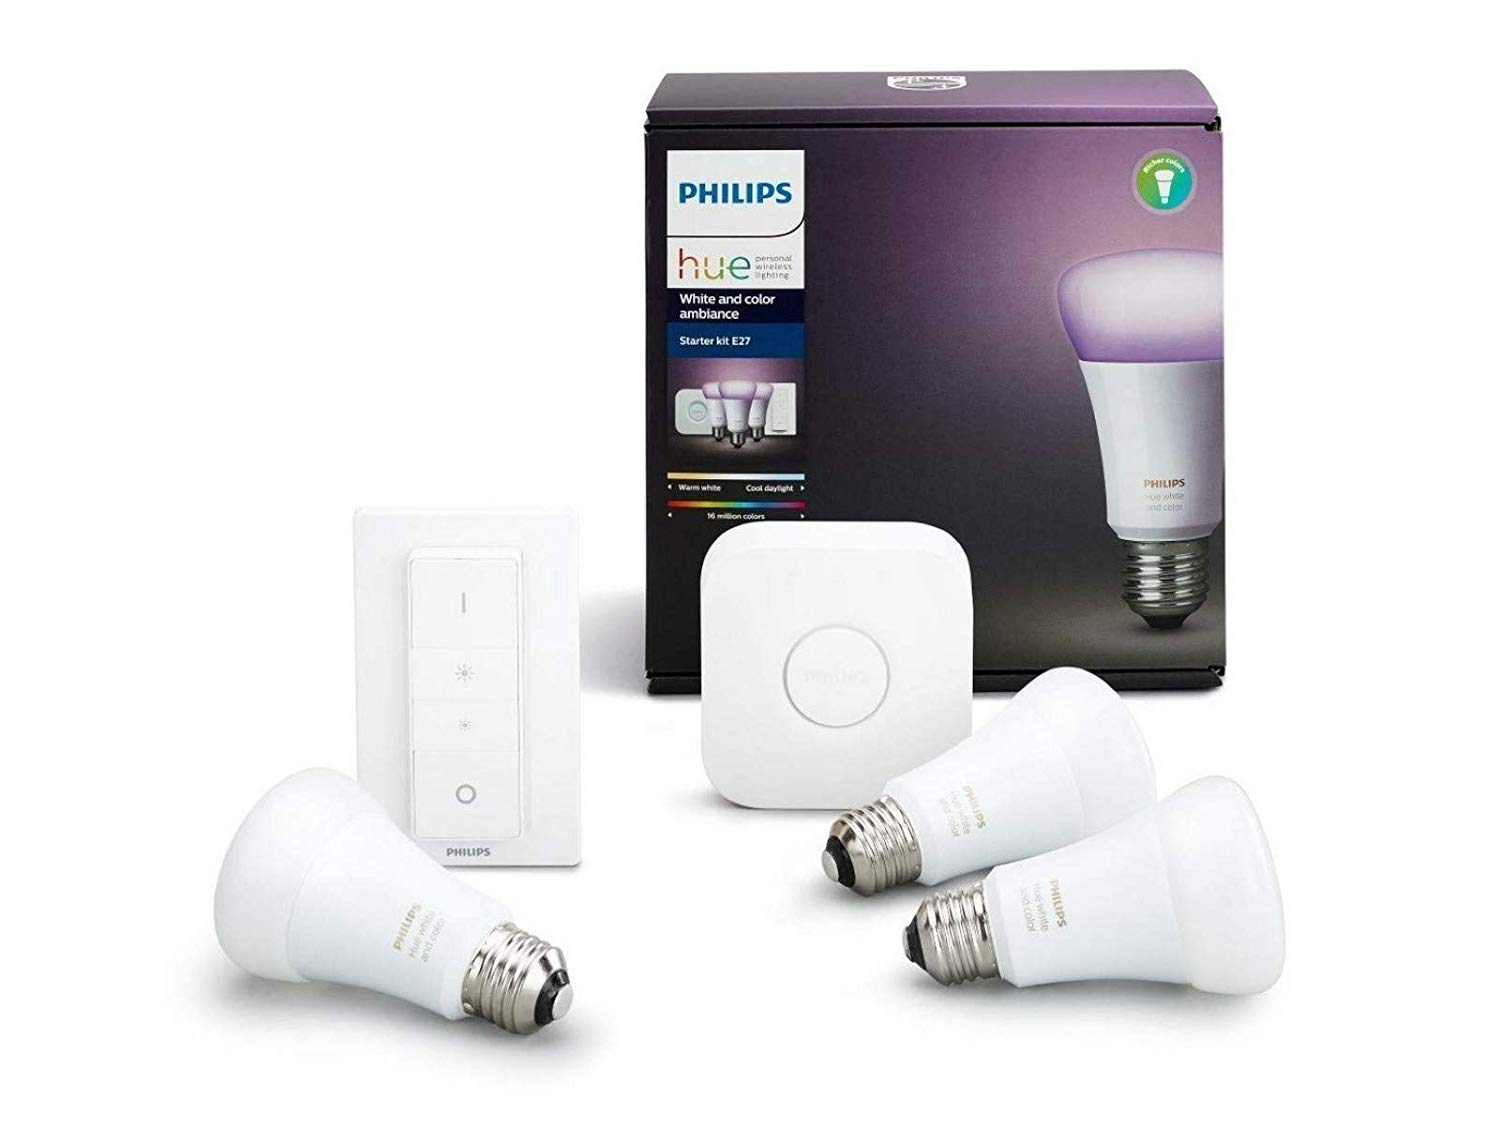 philips hue cashback aktion smarte lampen so g nstig wie noch nie giga. Black Bedroom Furniture Sets. Home Design Ideas